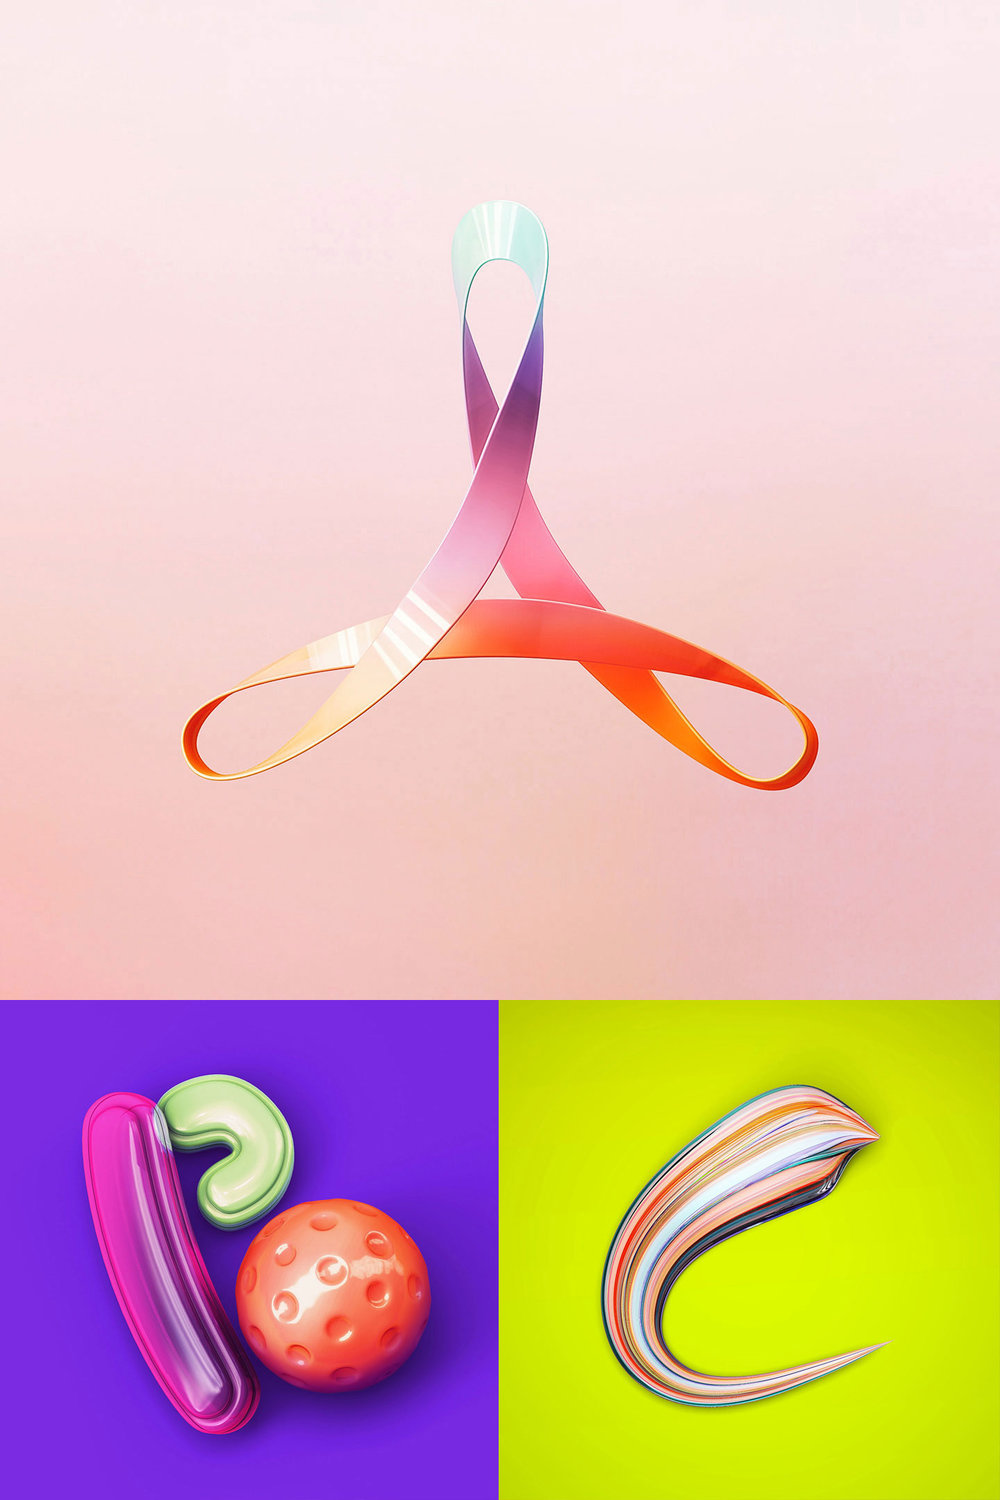 36 Days of Type 2016 - 3D typography letters A, B and C visual.